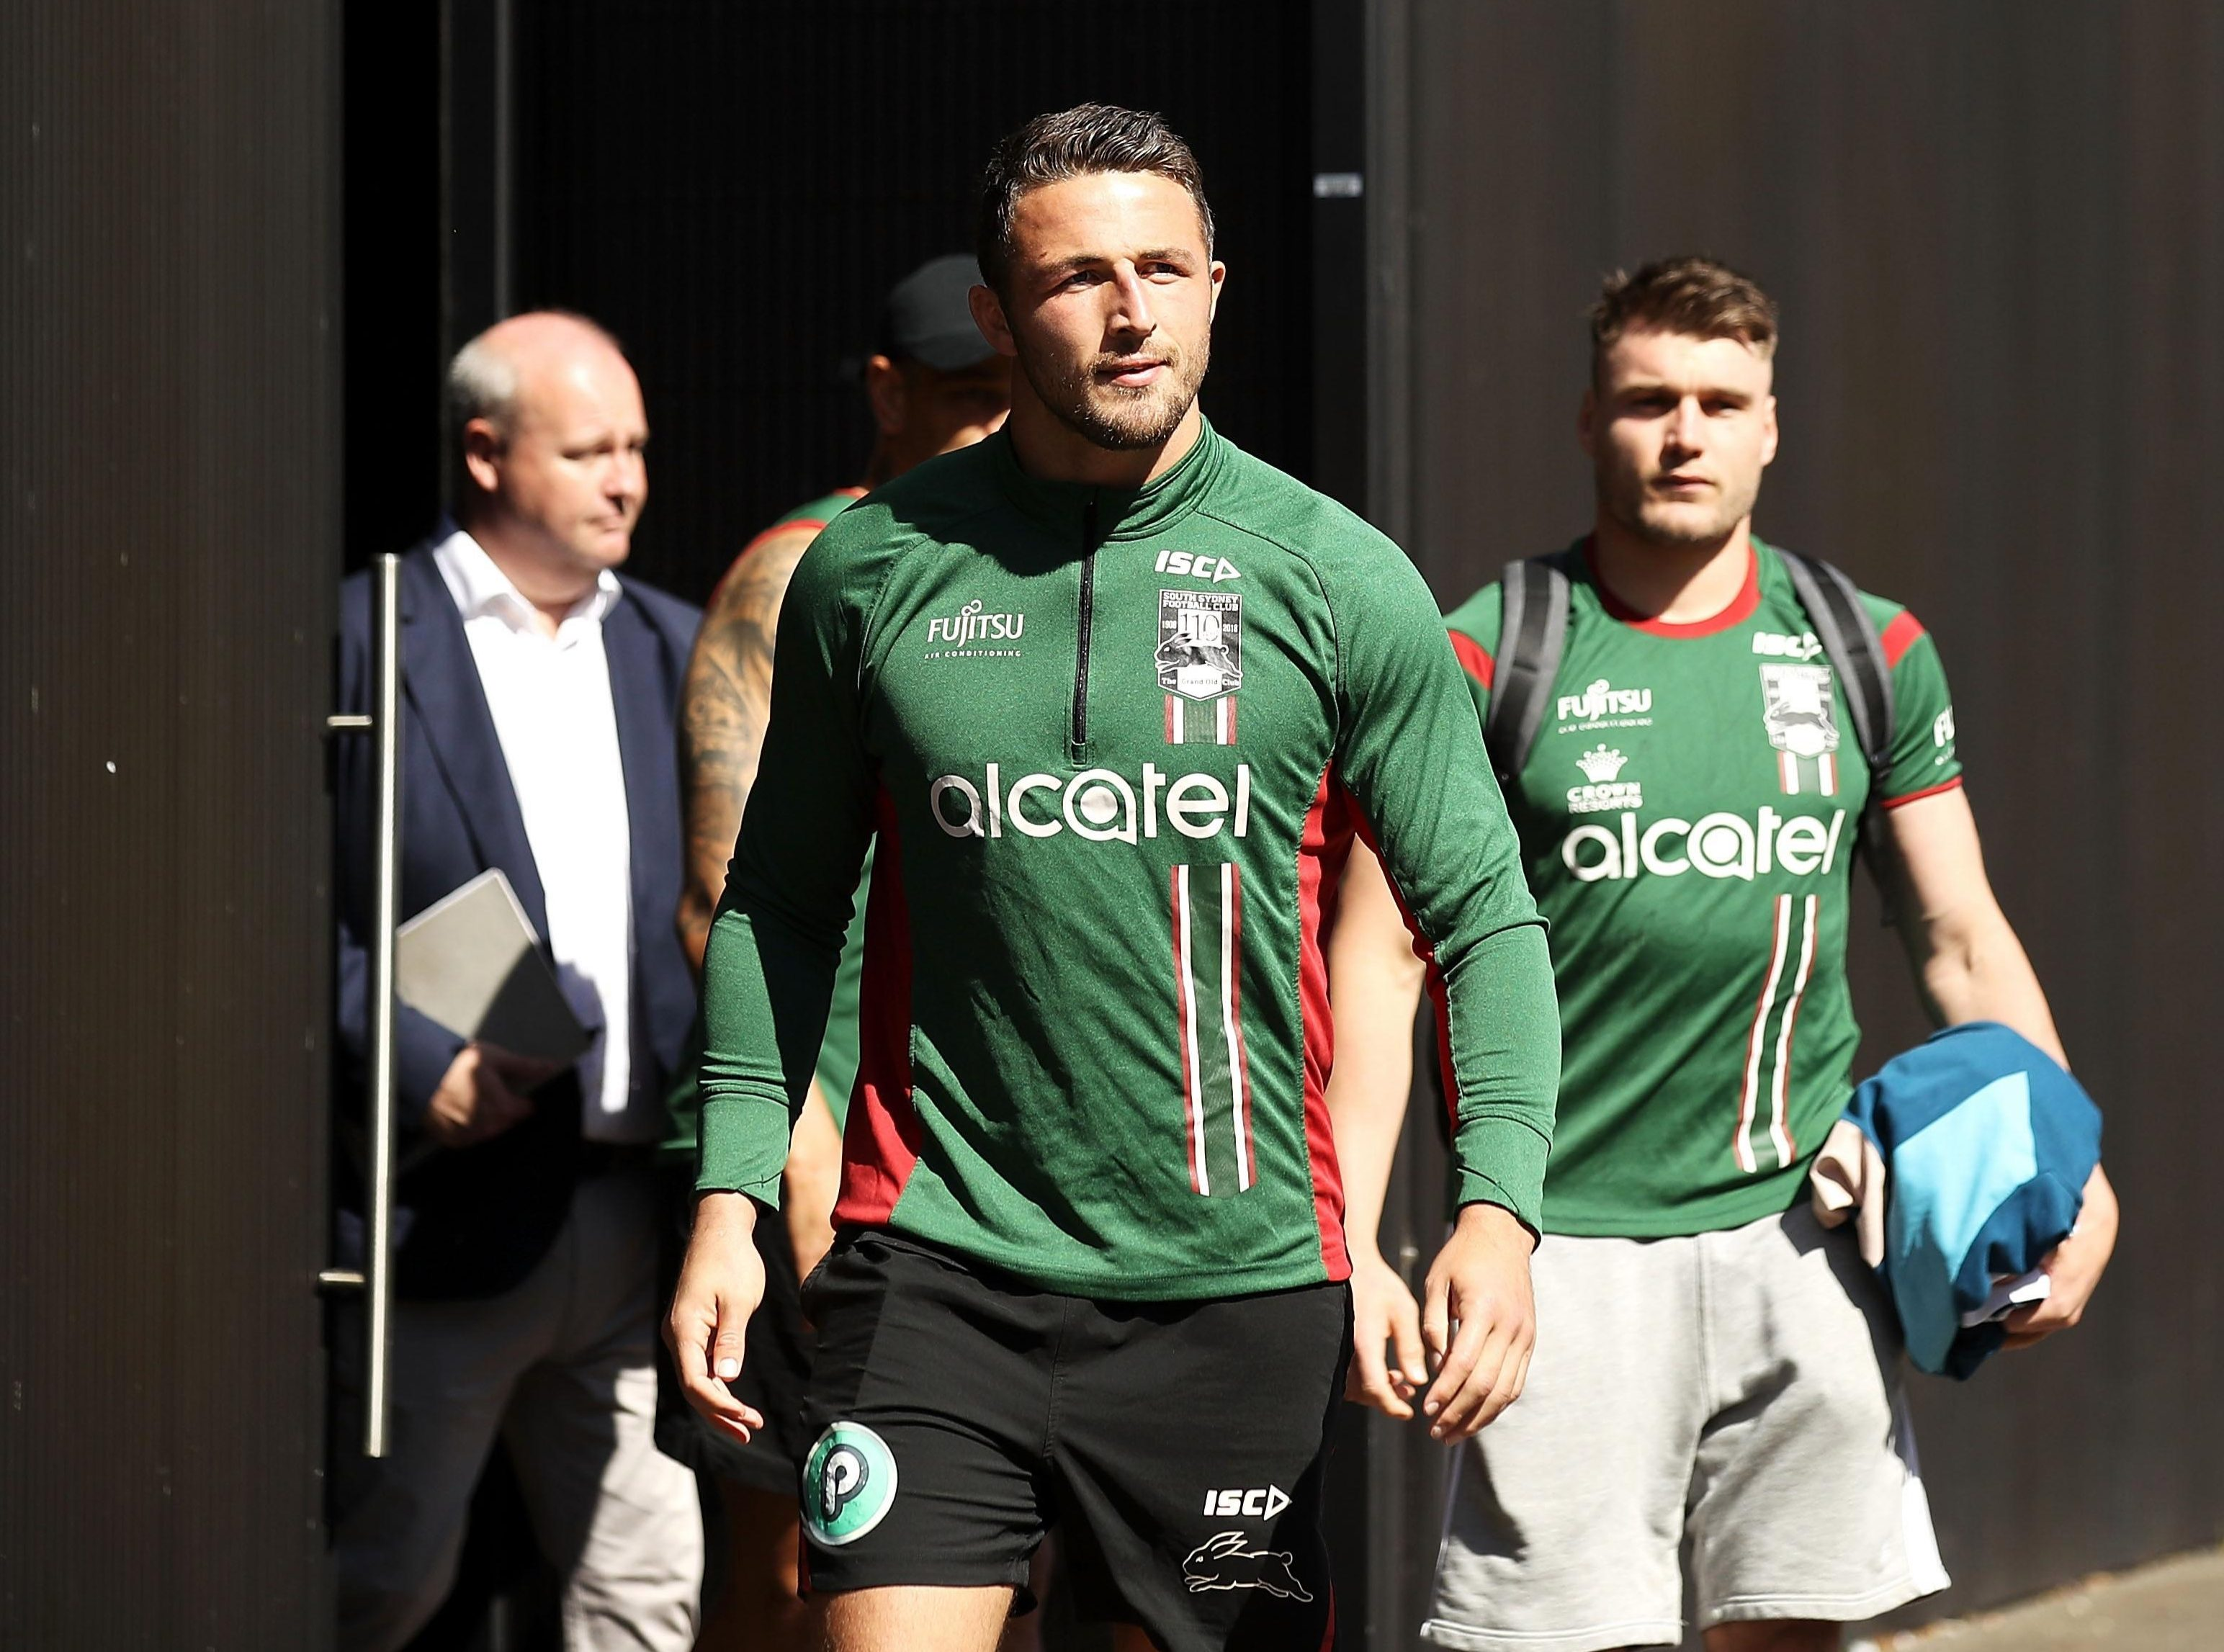 Burgess and his team are preparing for their next rugby league game of the season